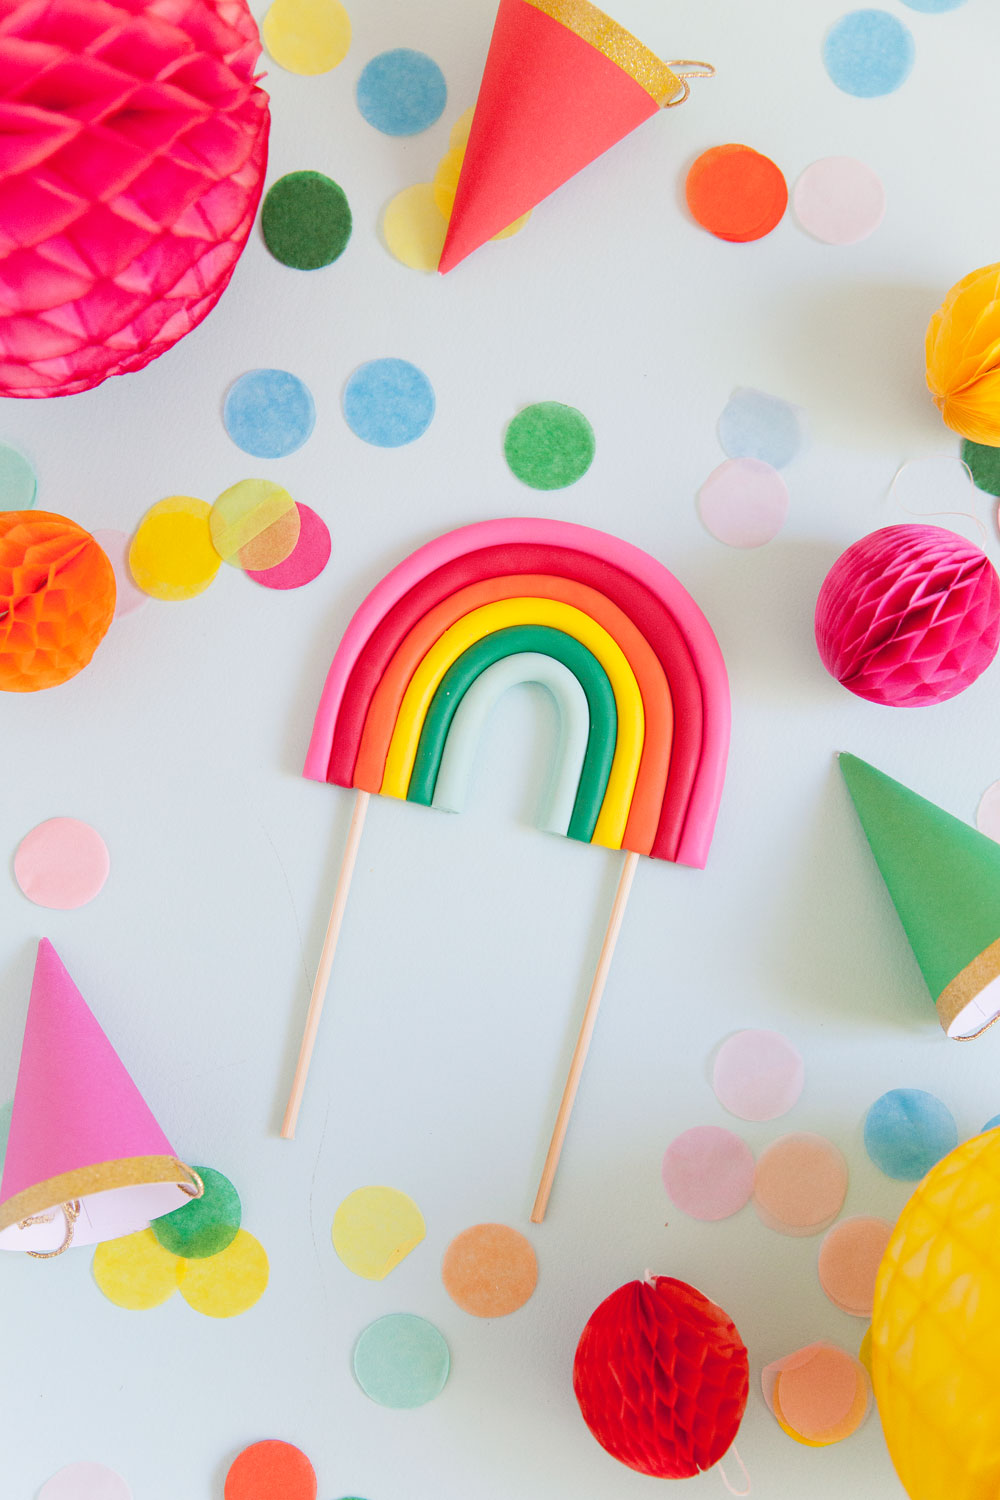 Make this cute DIY rainbow cake topper in a few simple steps. Perfect for any rainbow or unicorn themed birthday parties